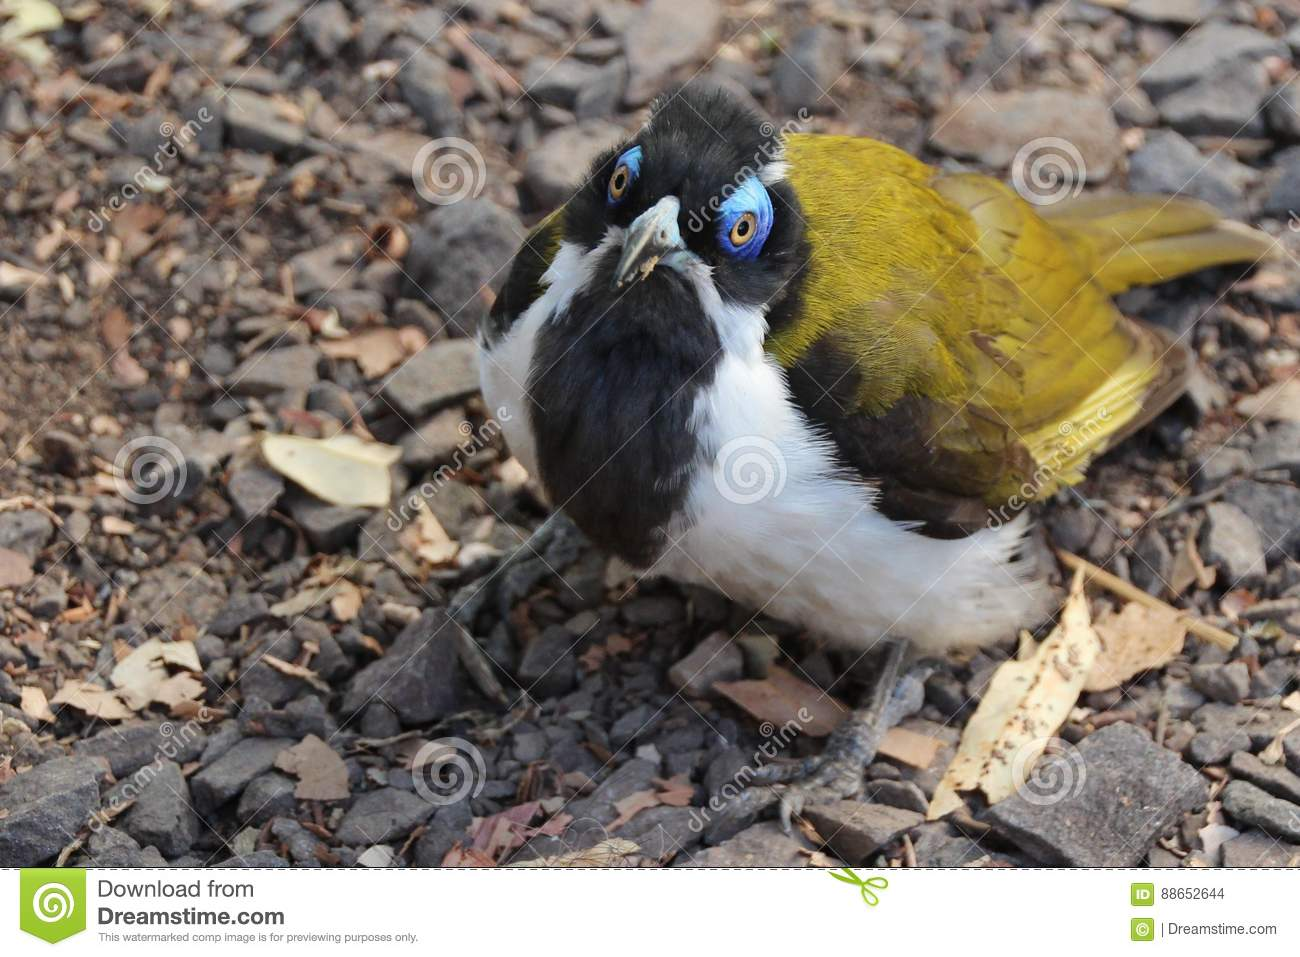 The glance of the Blue-faced honeyeater